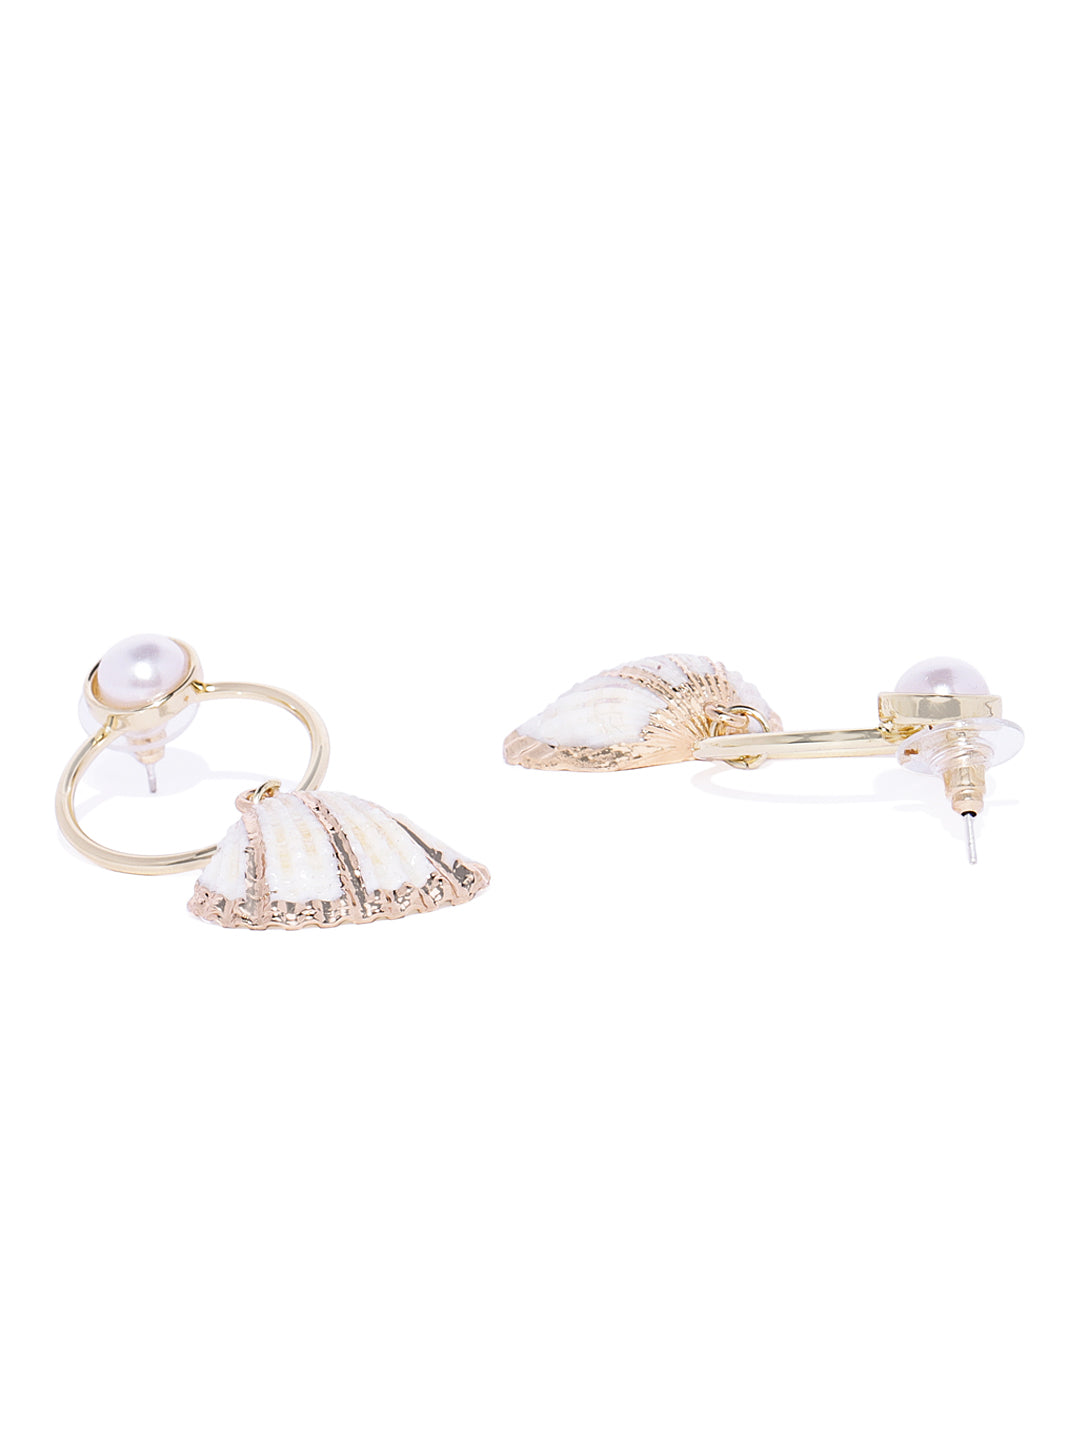 Gold and White Natural Shell Drops - ChicMela